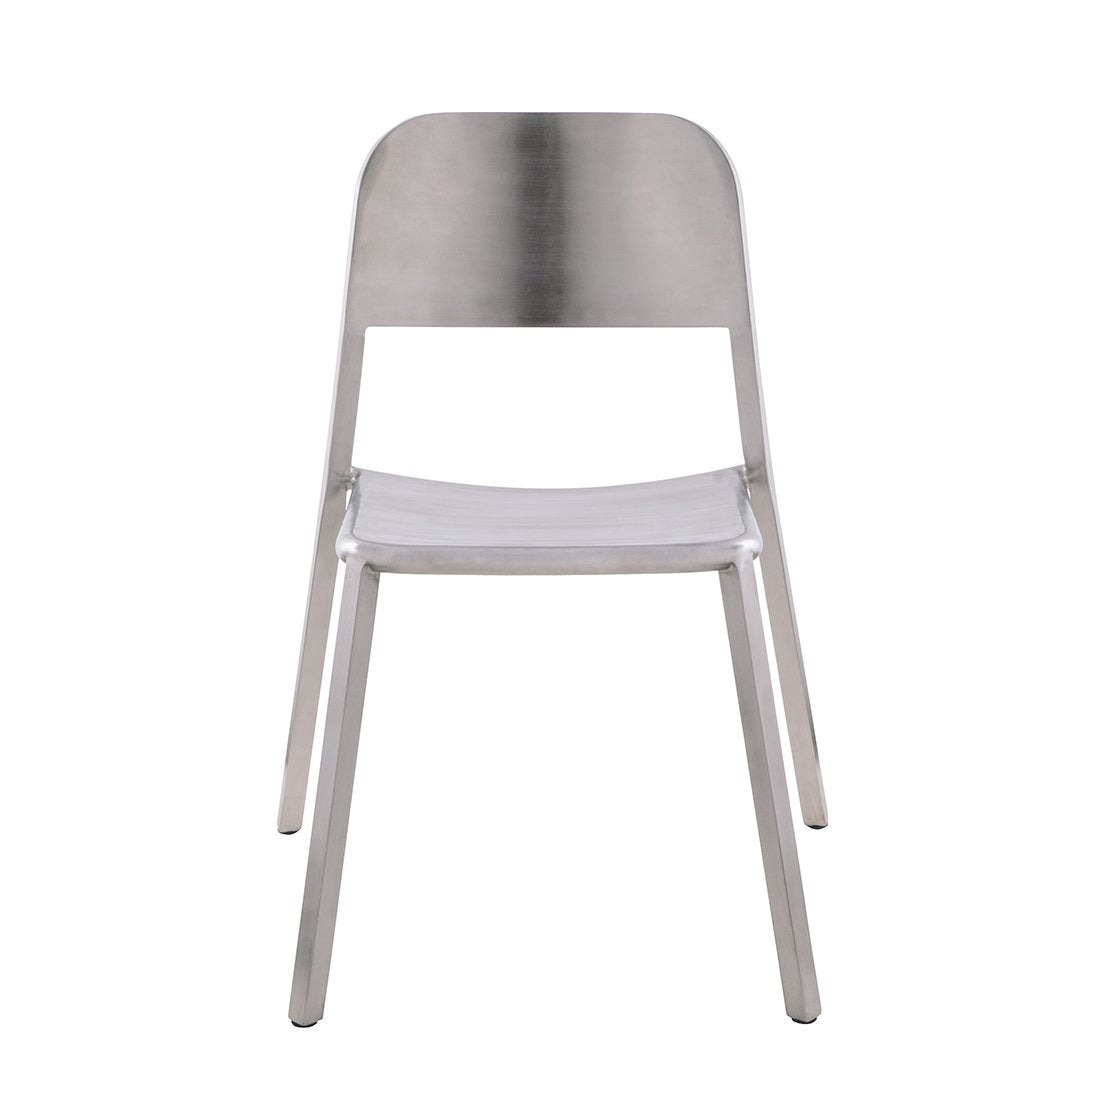 [FEC3606BSS] Malmur Side Chair